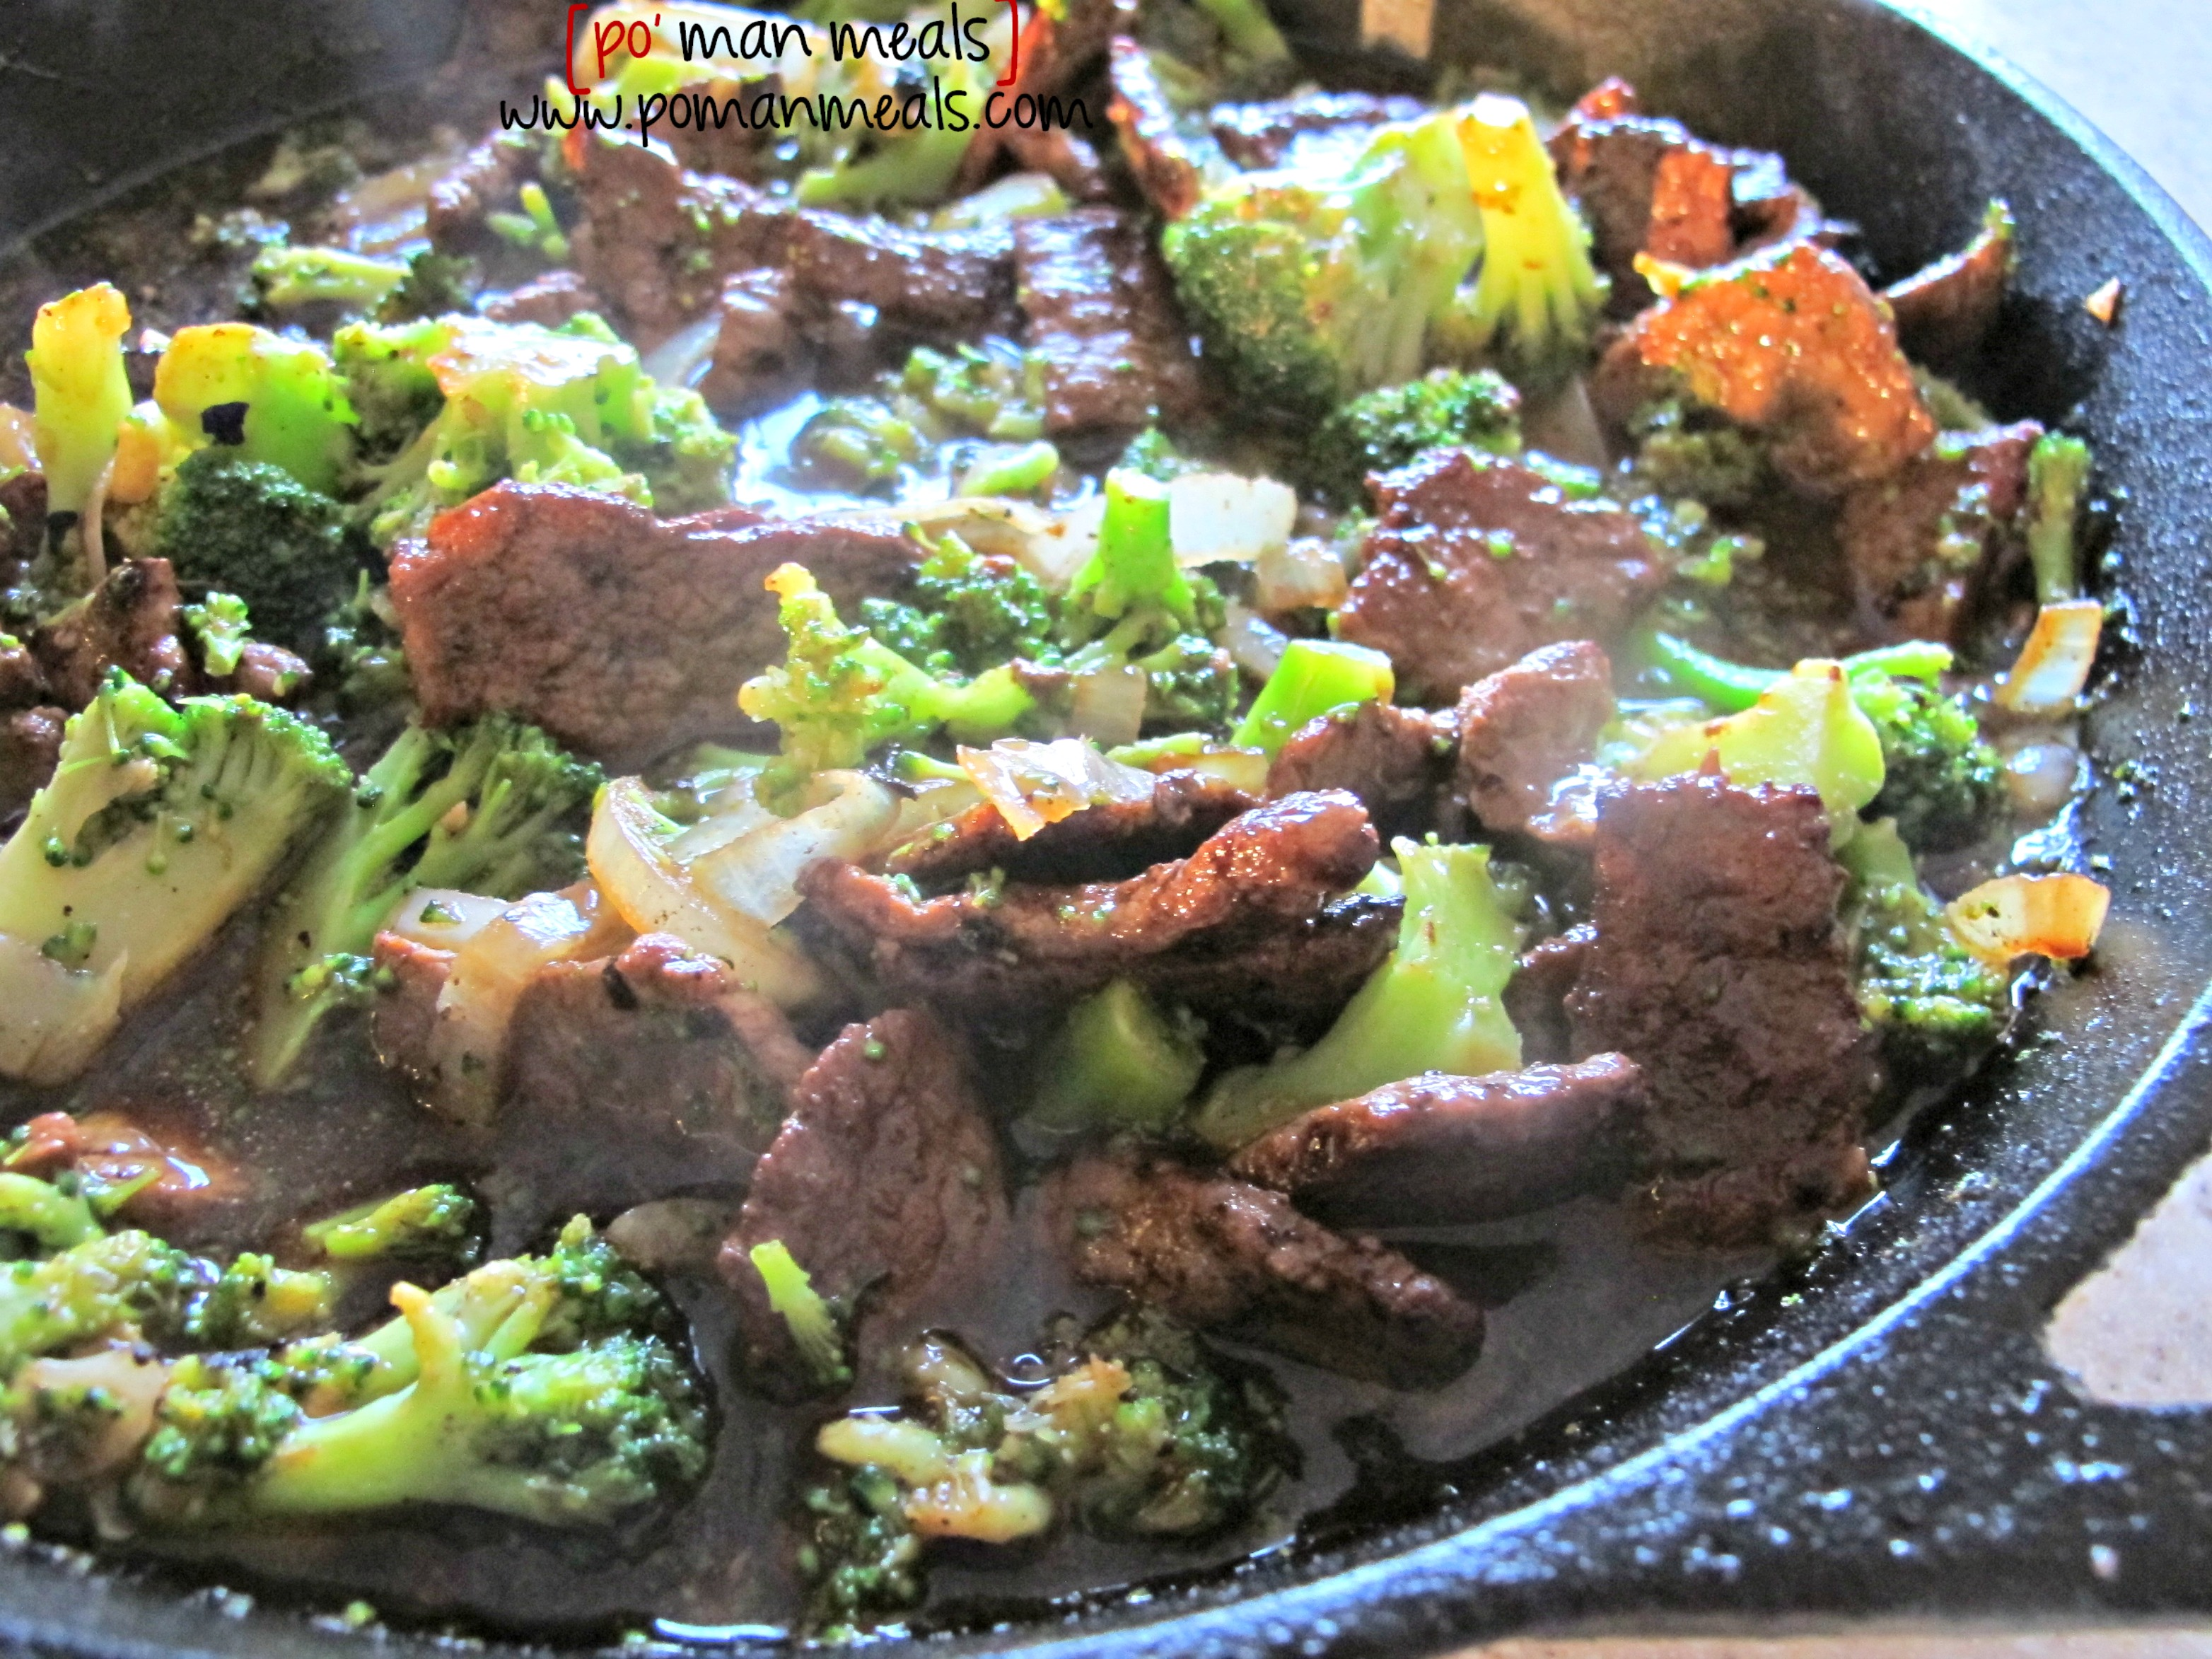 Po man meals easy beef and broccoli easy beef and broccoli forumfinder Gallery